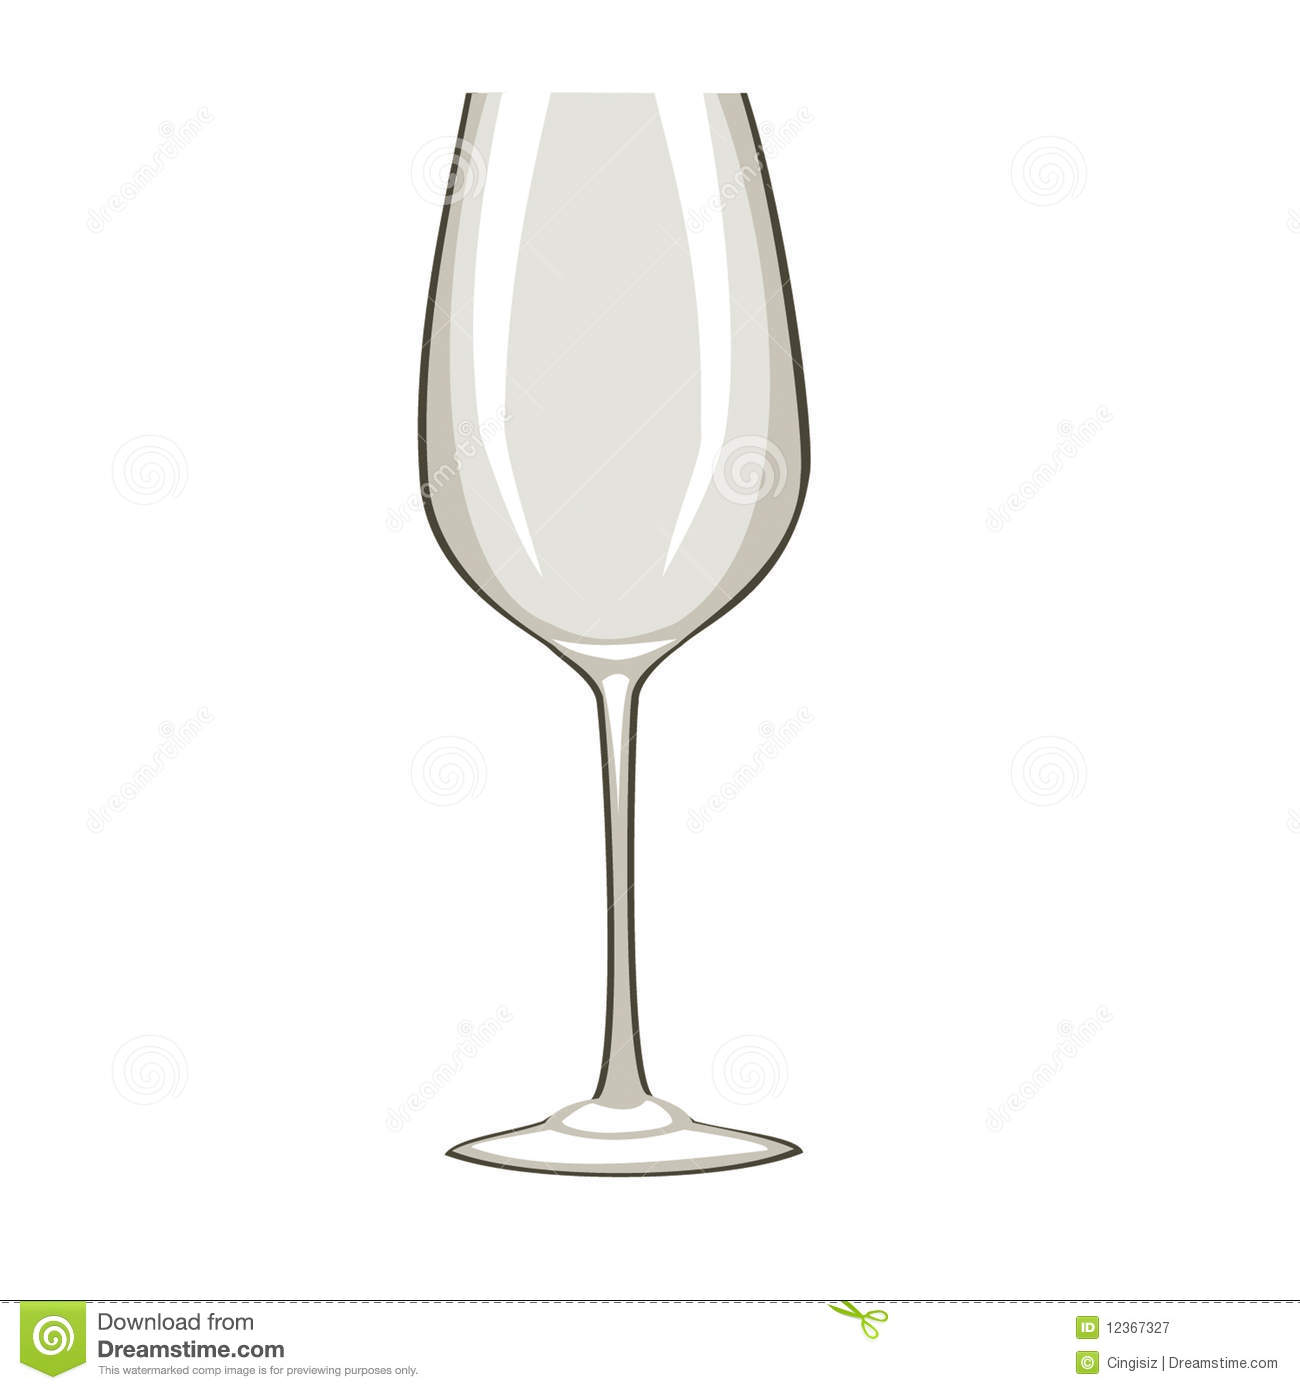 Weinglas Clipart Kostenlos Single Empty Wine Glass Royalty Free Stock Photography